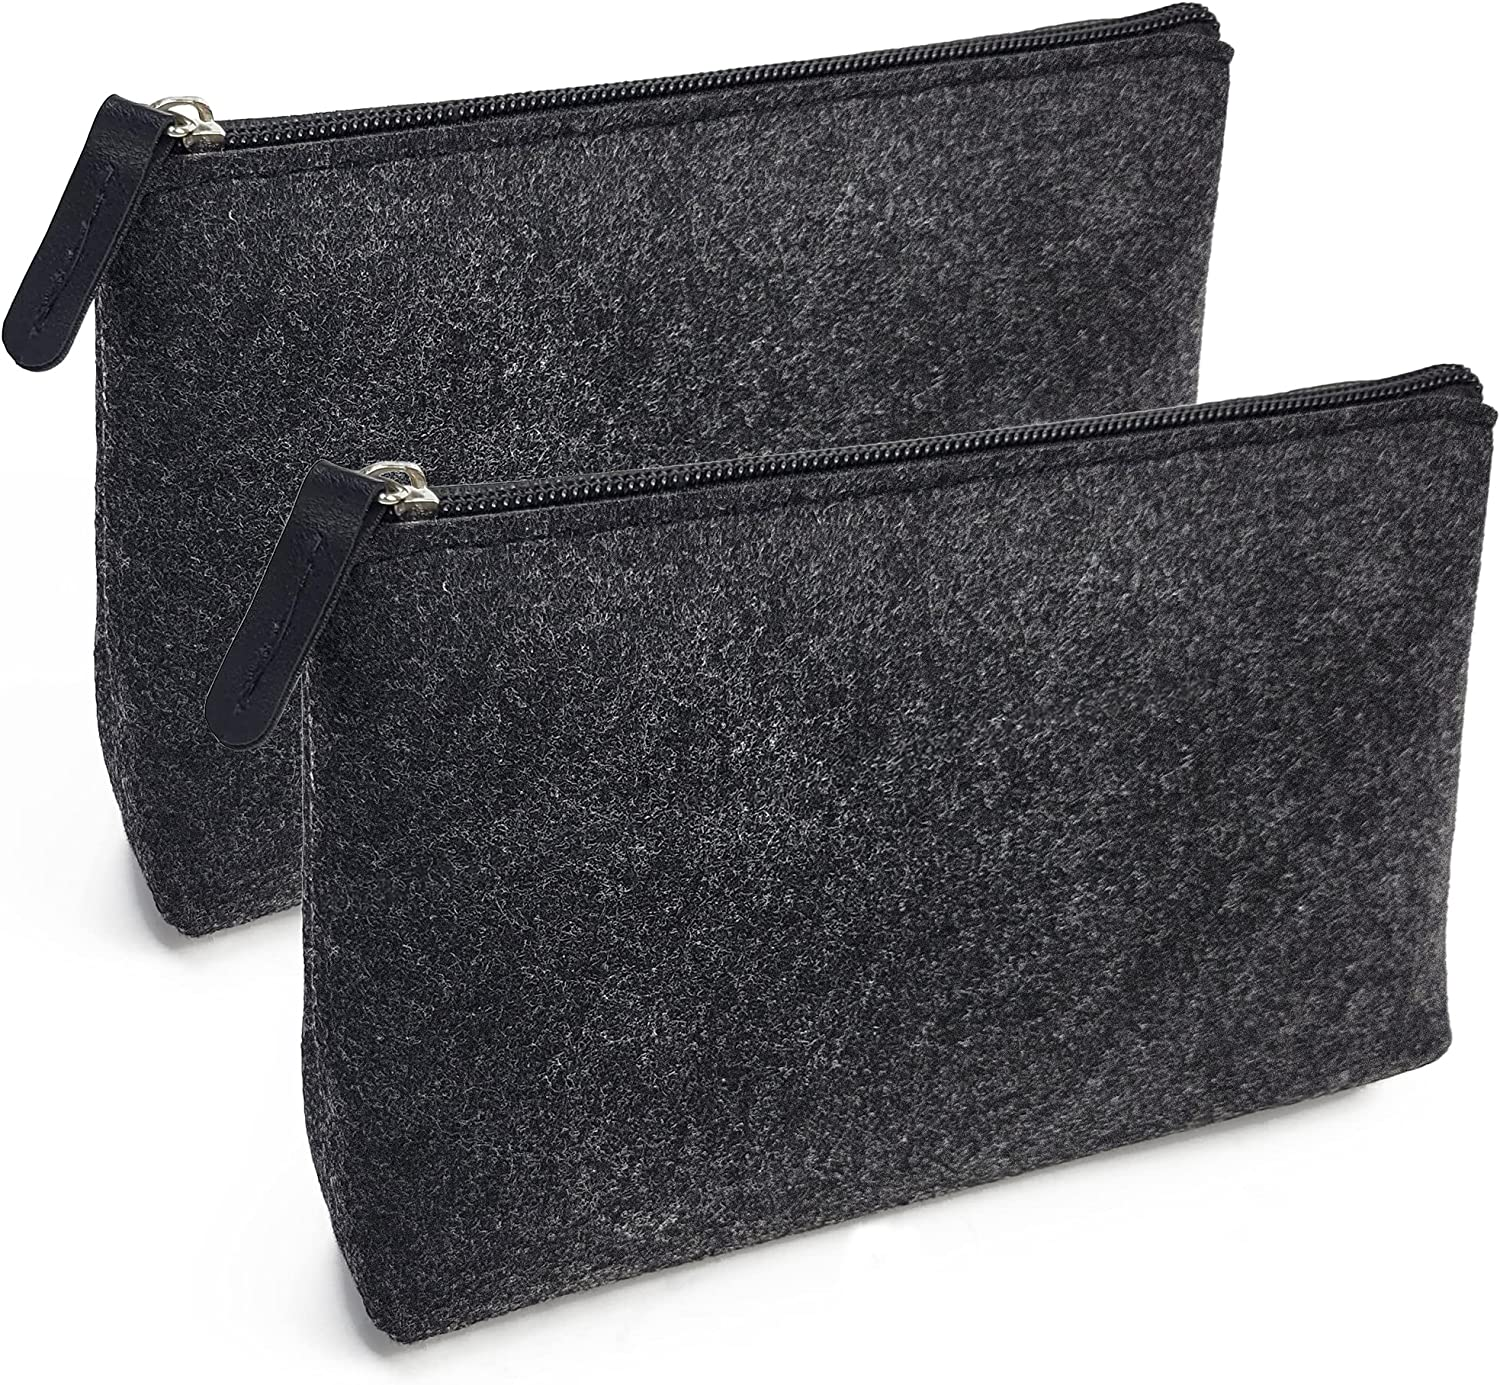 Pencil Popularity Bag Pen Case Felt Pouch Fixed price for sale Zipper Students Stationery f